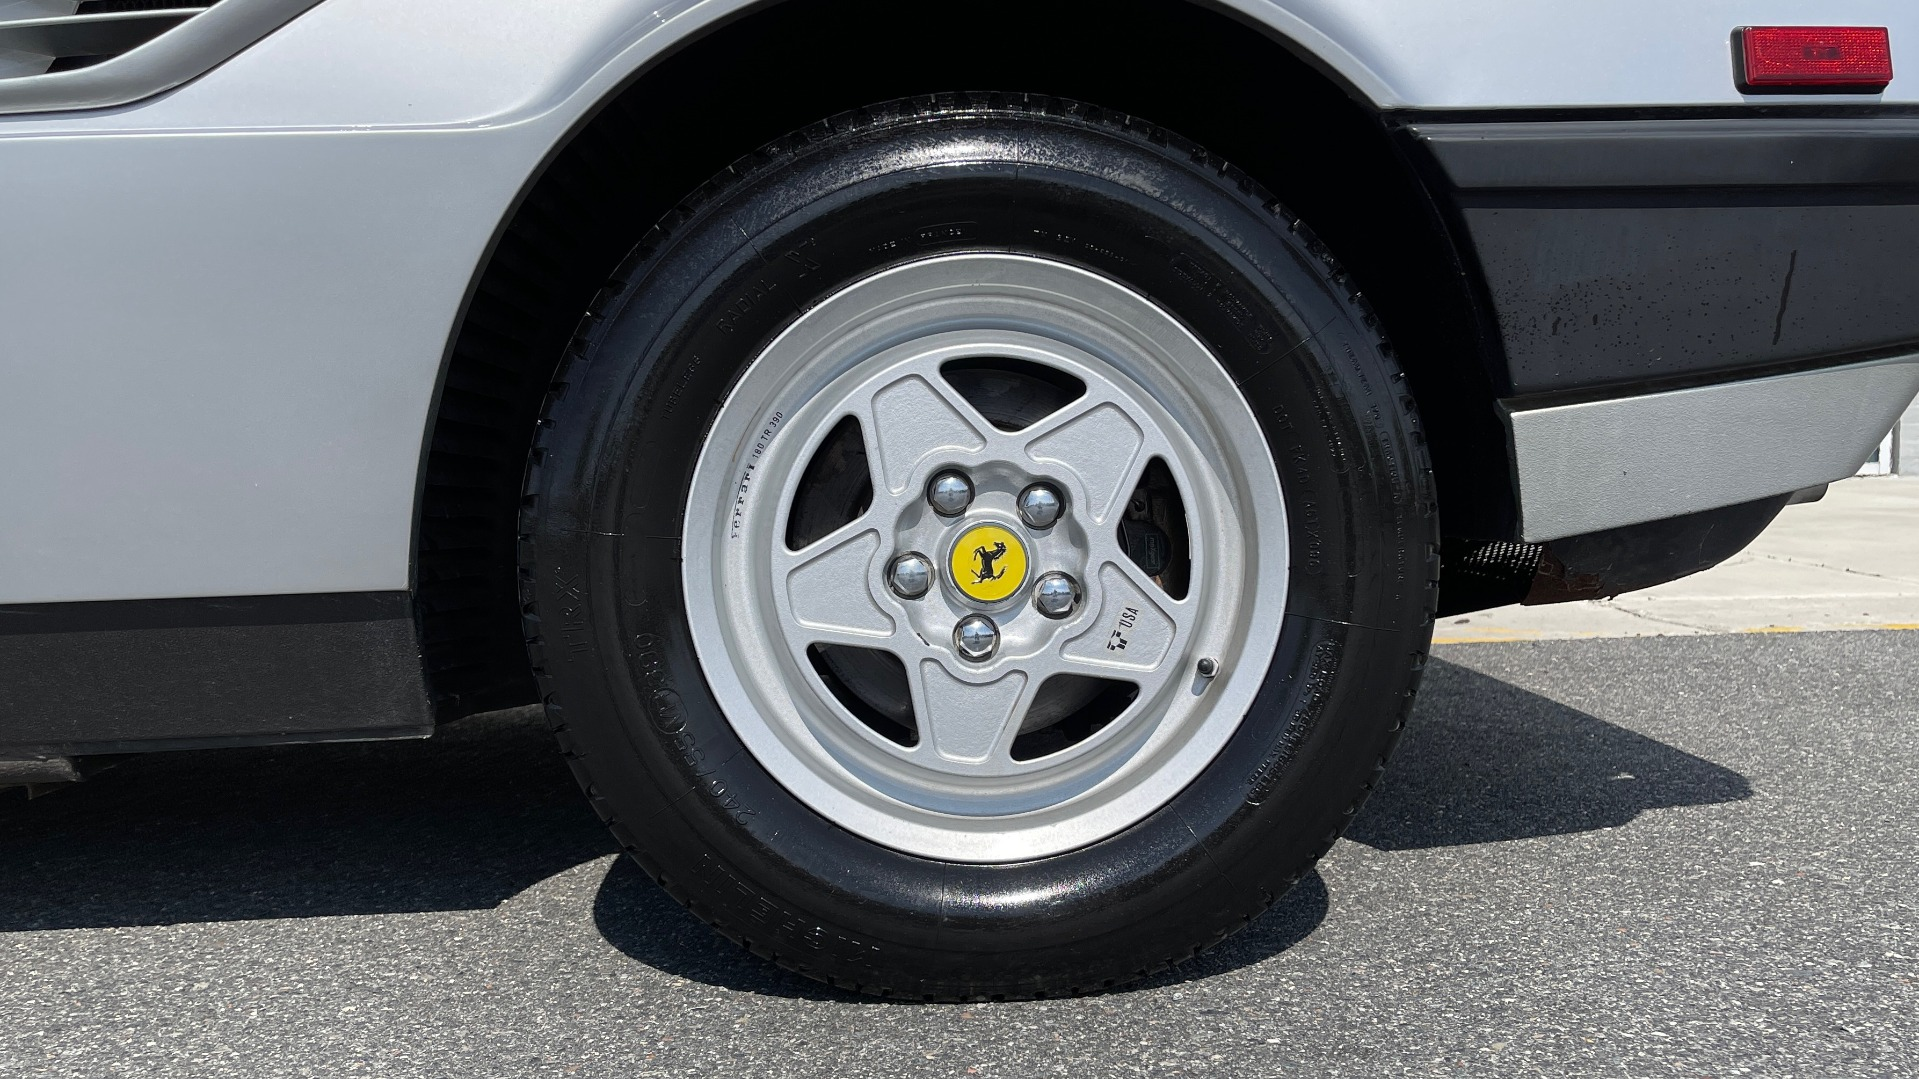 Used 1984 Ferrari MONDIAL 2+2 CABRIOLET / MID-ENGINE 3.0L V8 240HP / 5-SPEED MANUAL / LOW MILES for sale Call for price at Formula Imports in Charlotte NC 28227 77